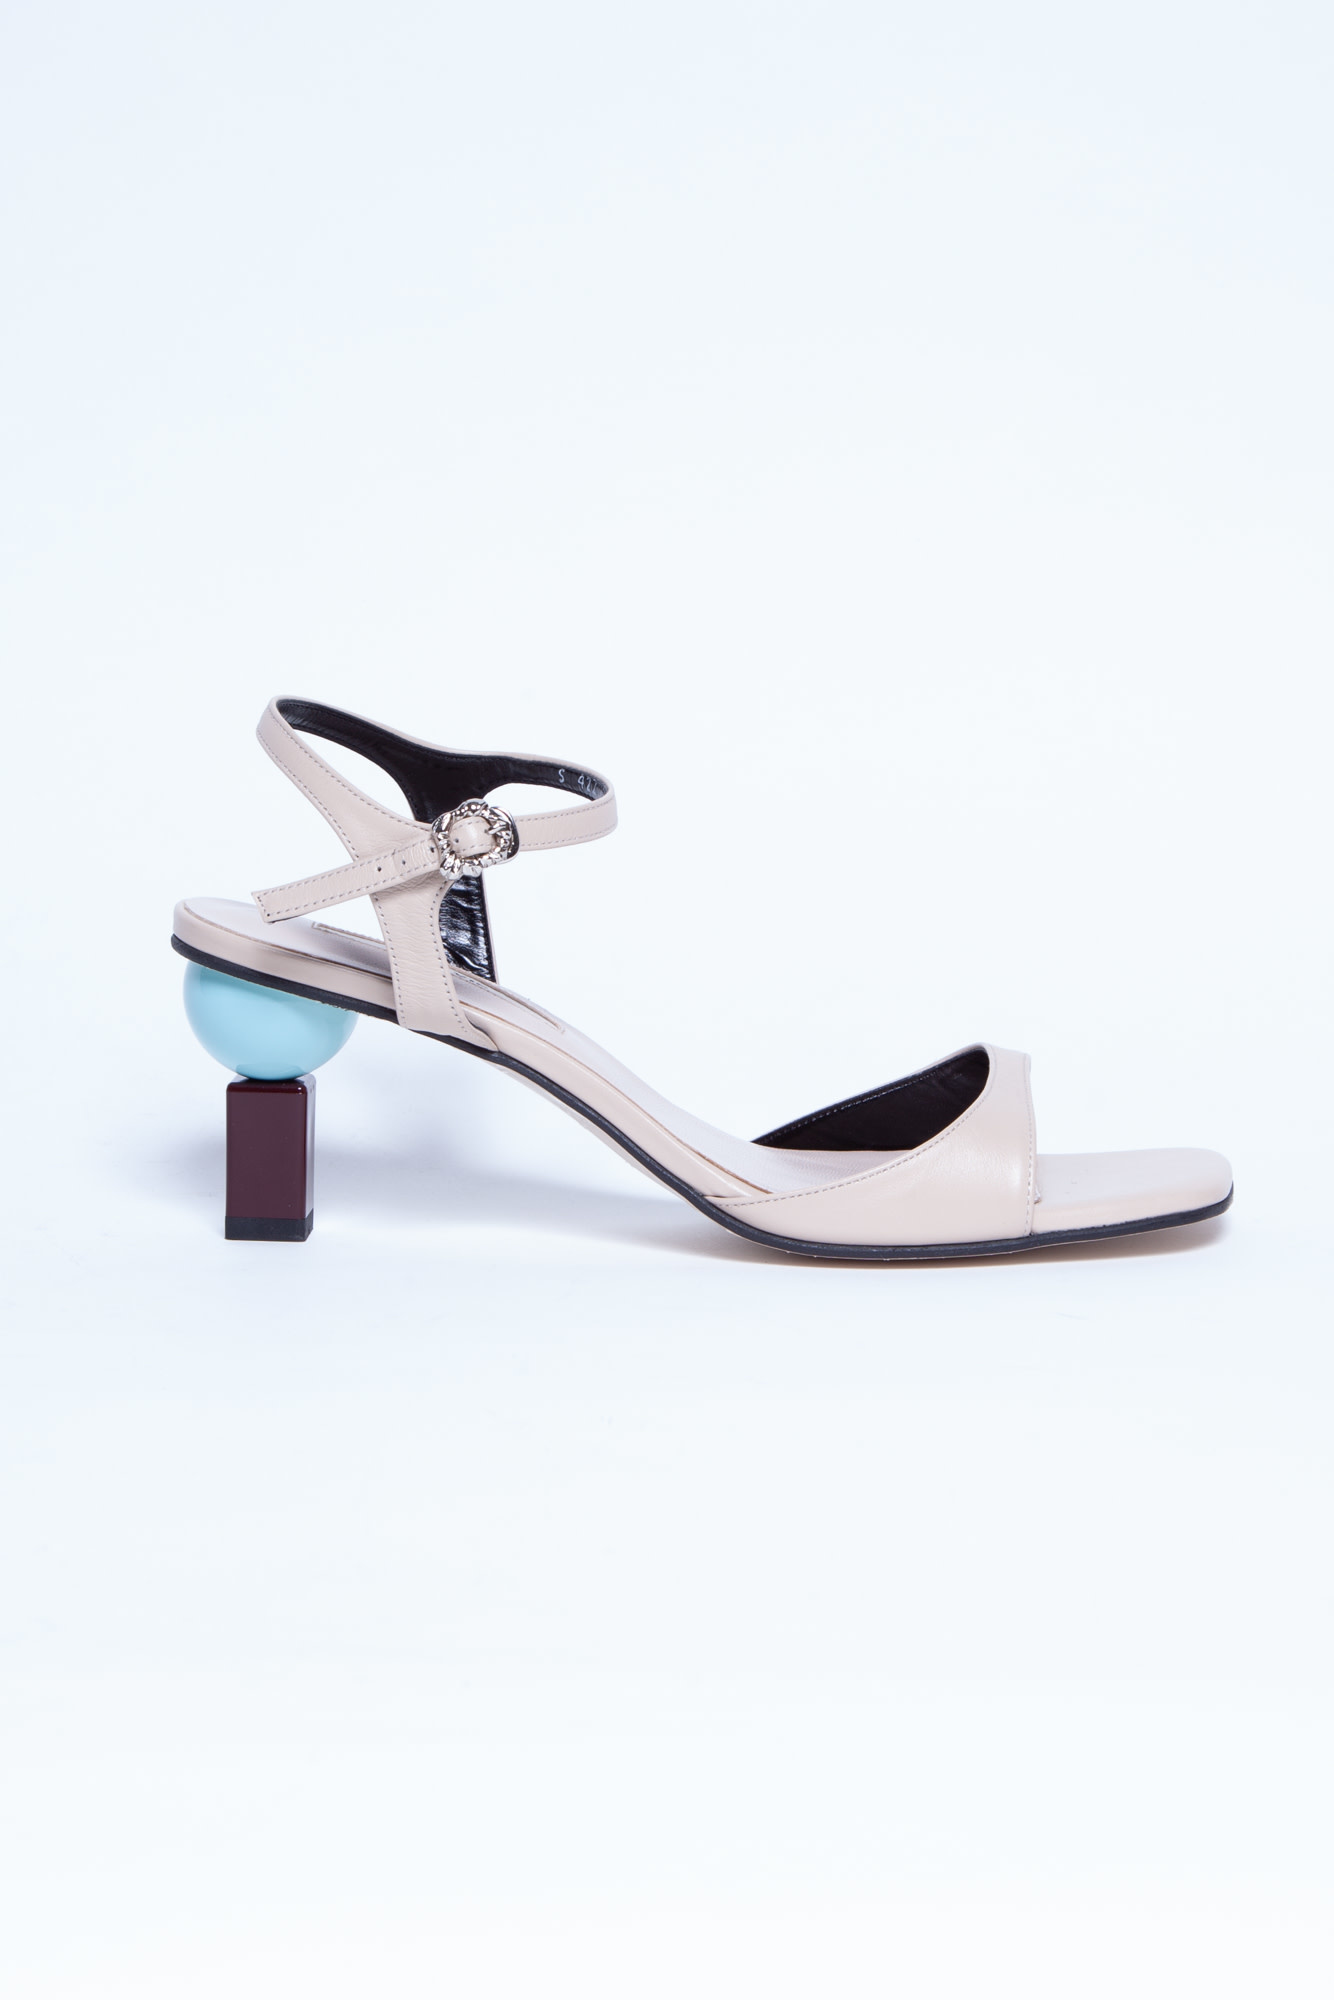 Yuul Yie BEIGE SANDALS WITH GEOMETRIC HEELS